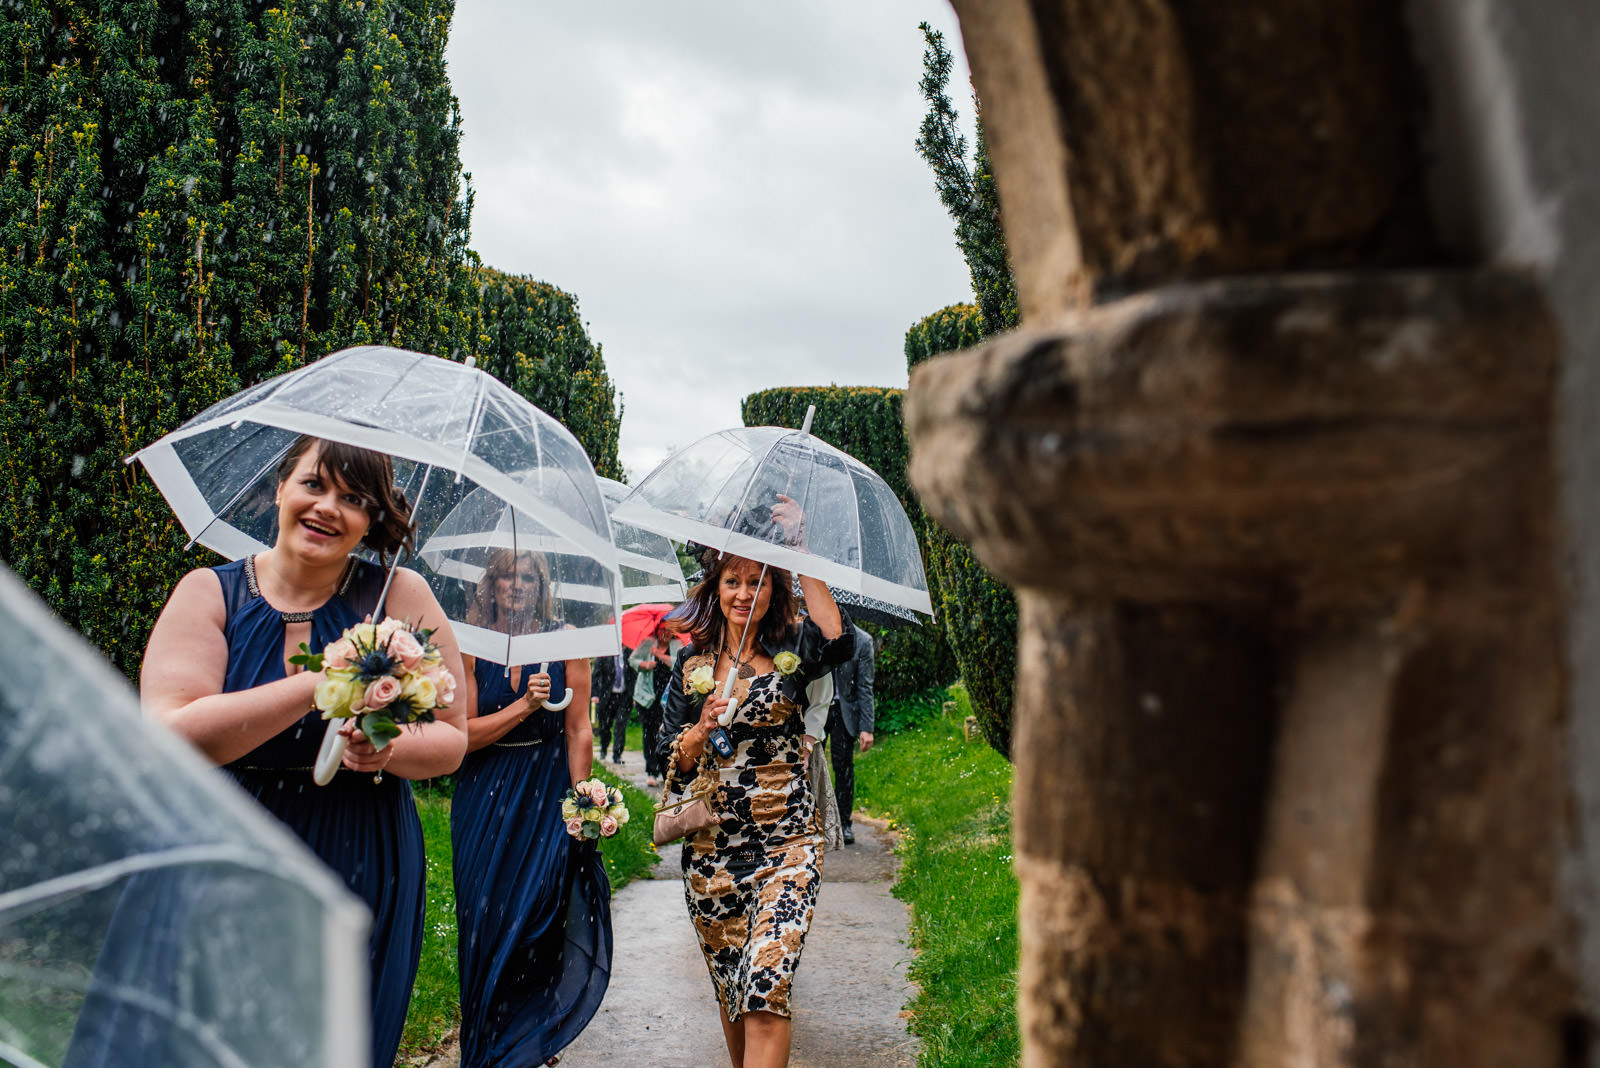 Guests arriving at wedding in the rain